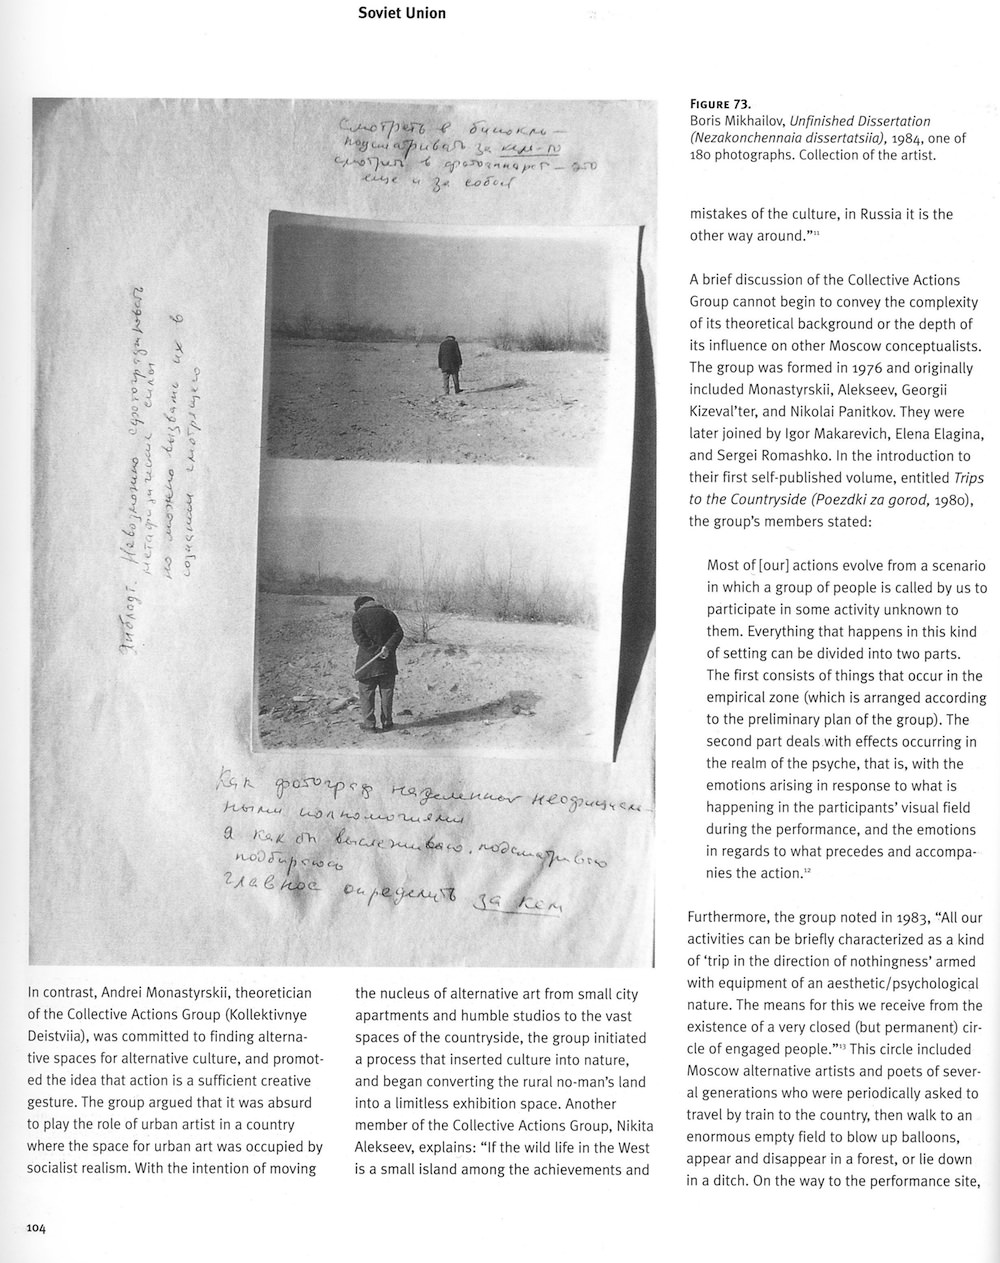 Margarita Tupitsyn. About Early Soviet Conceptualism. Page 6